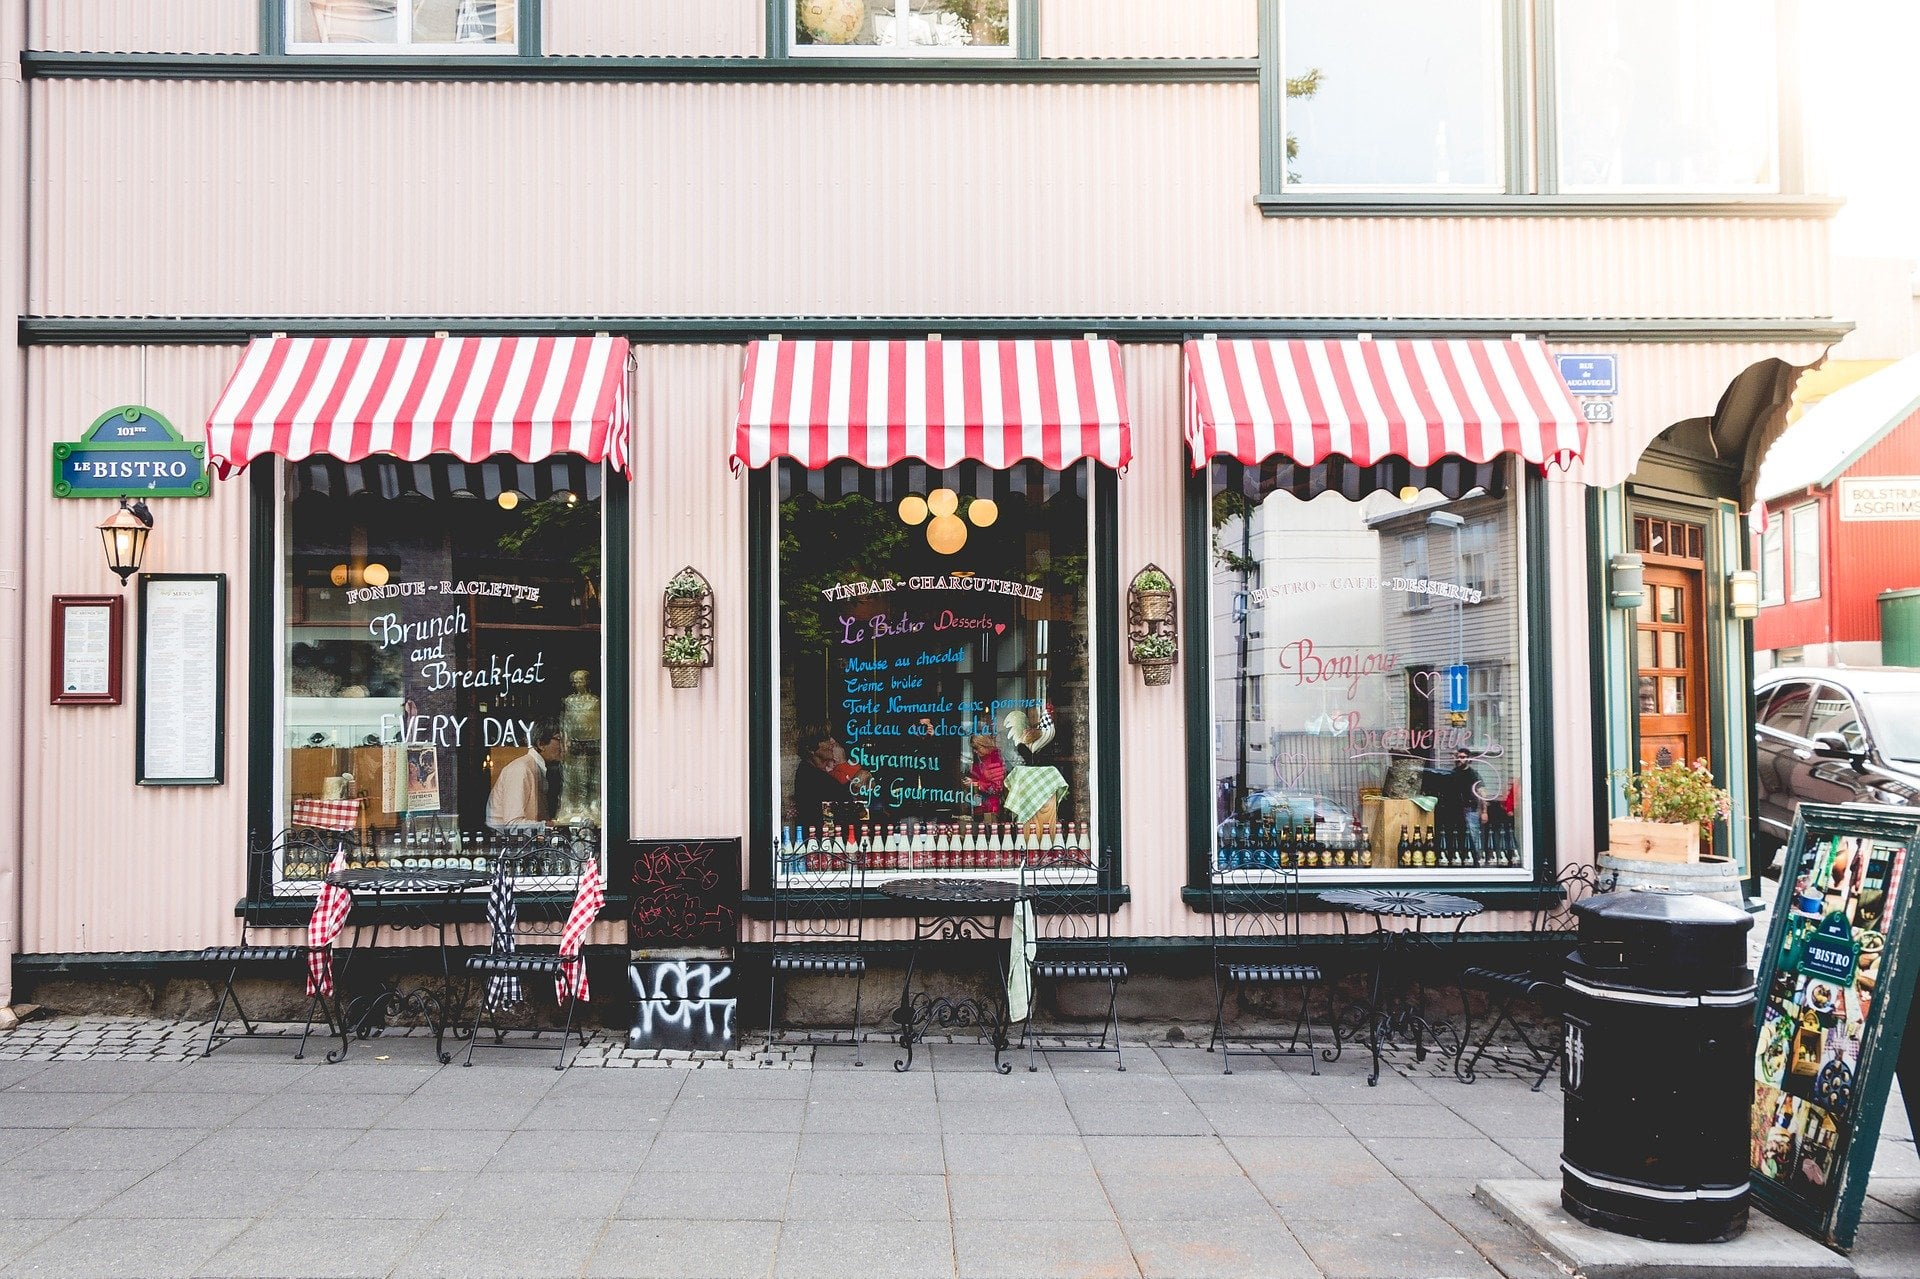 8 In-Store Marketing Ideas to Drive More Retail Sales